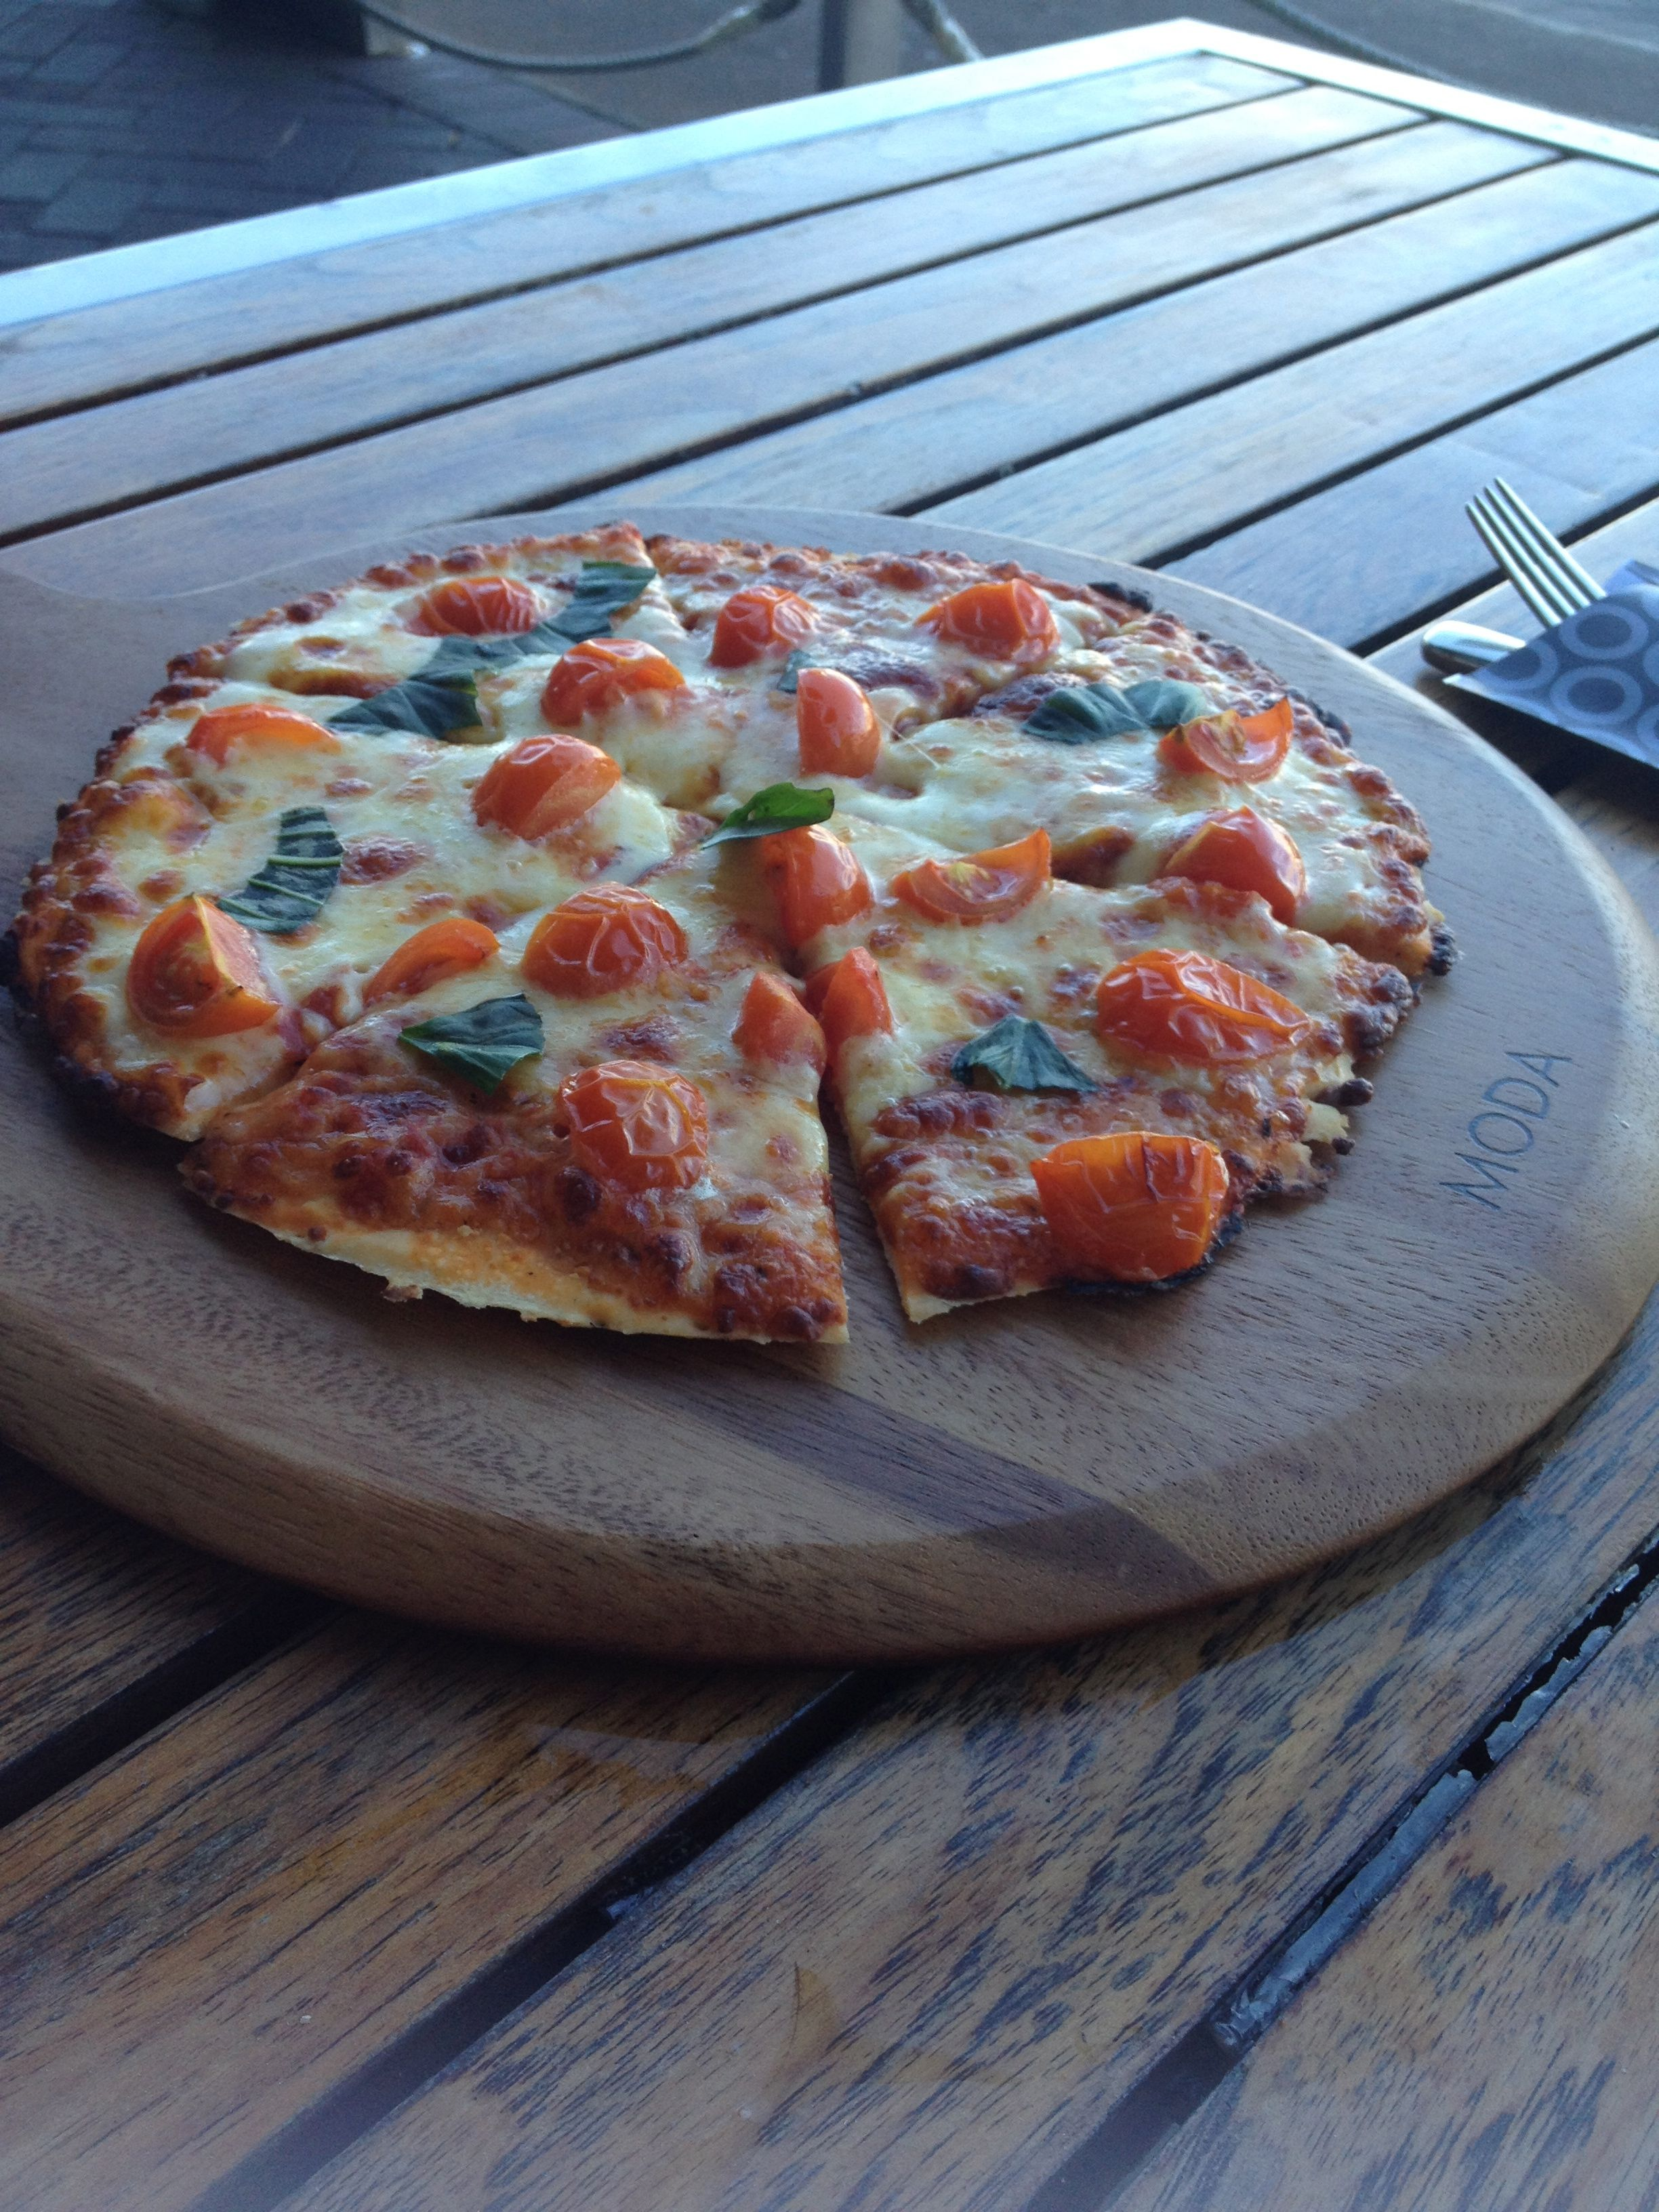 pizza at the cruse bar in Sydney